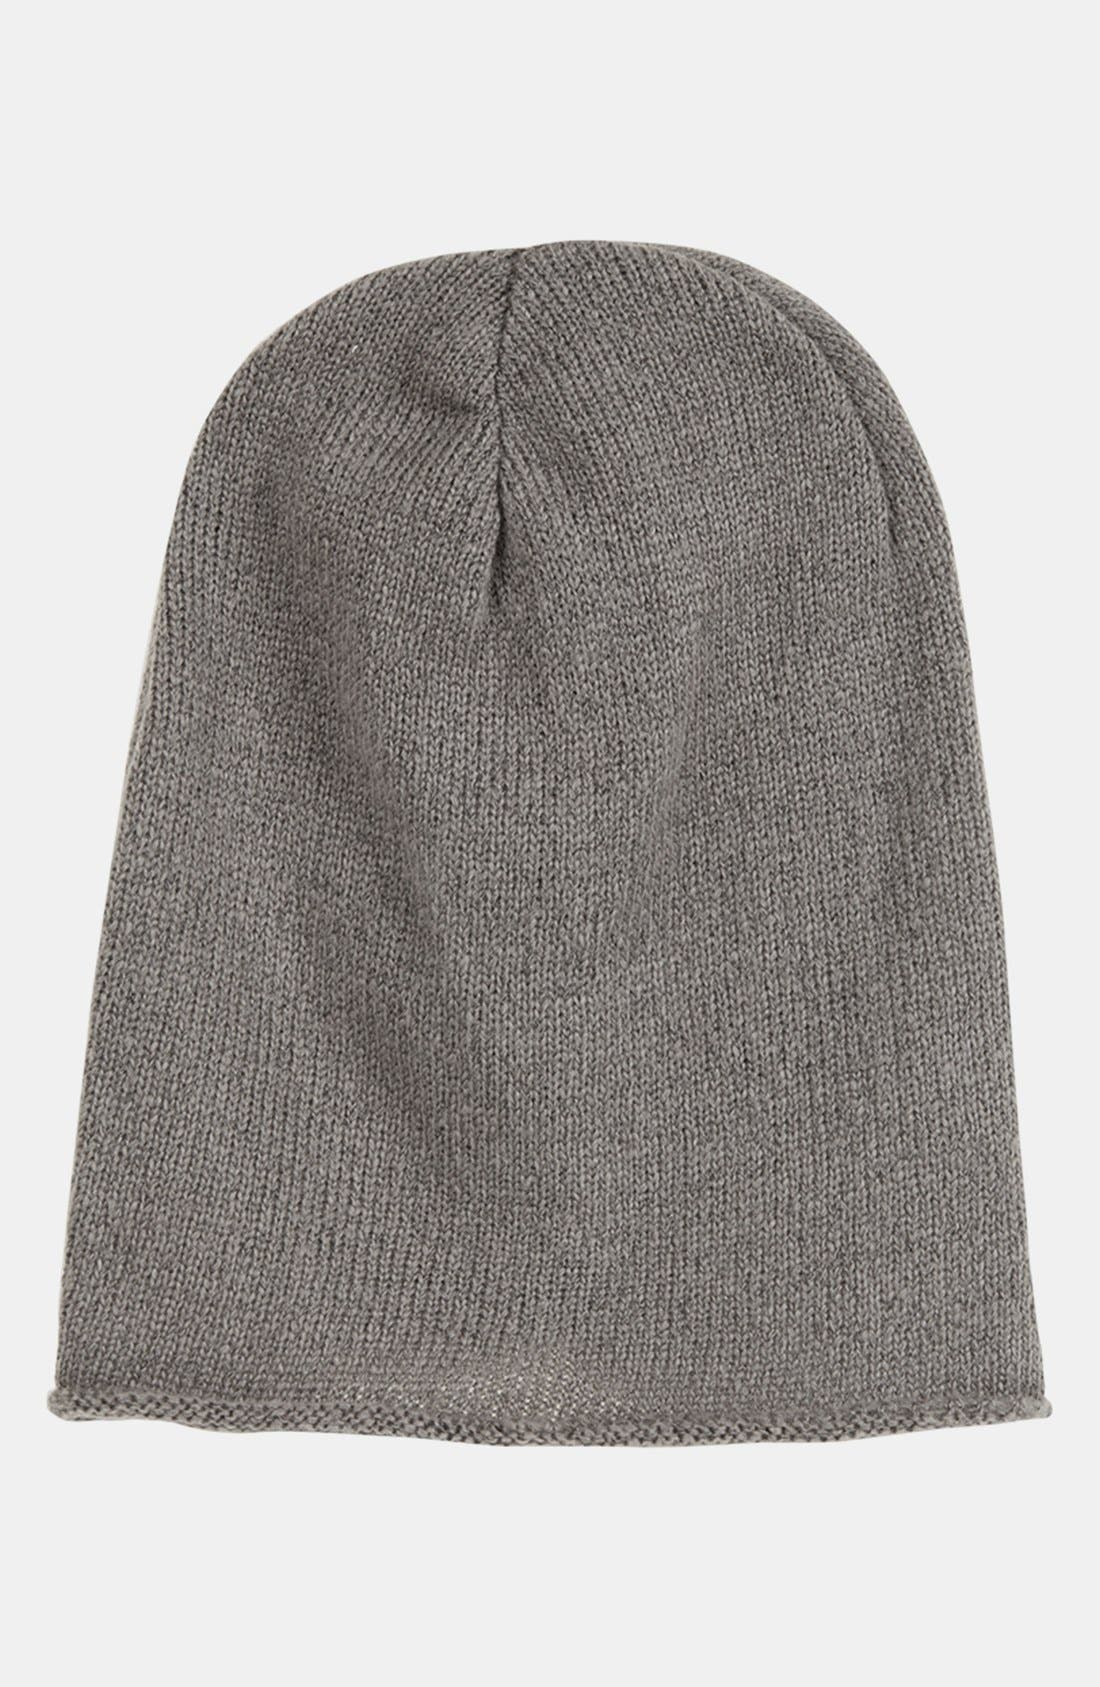 Alternate Image 1 Selected - Topshop Slouchy Beanie